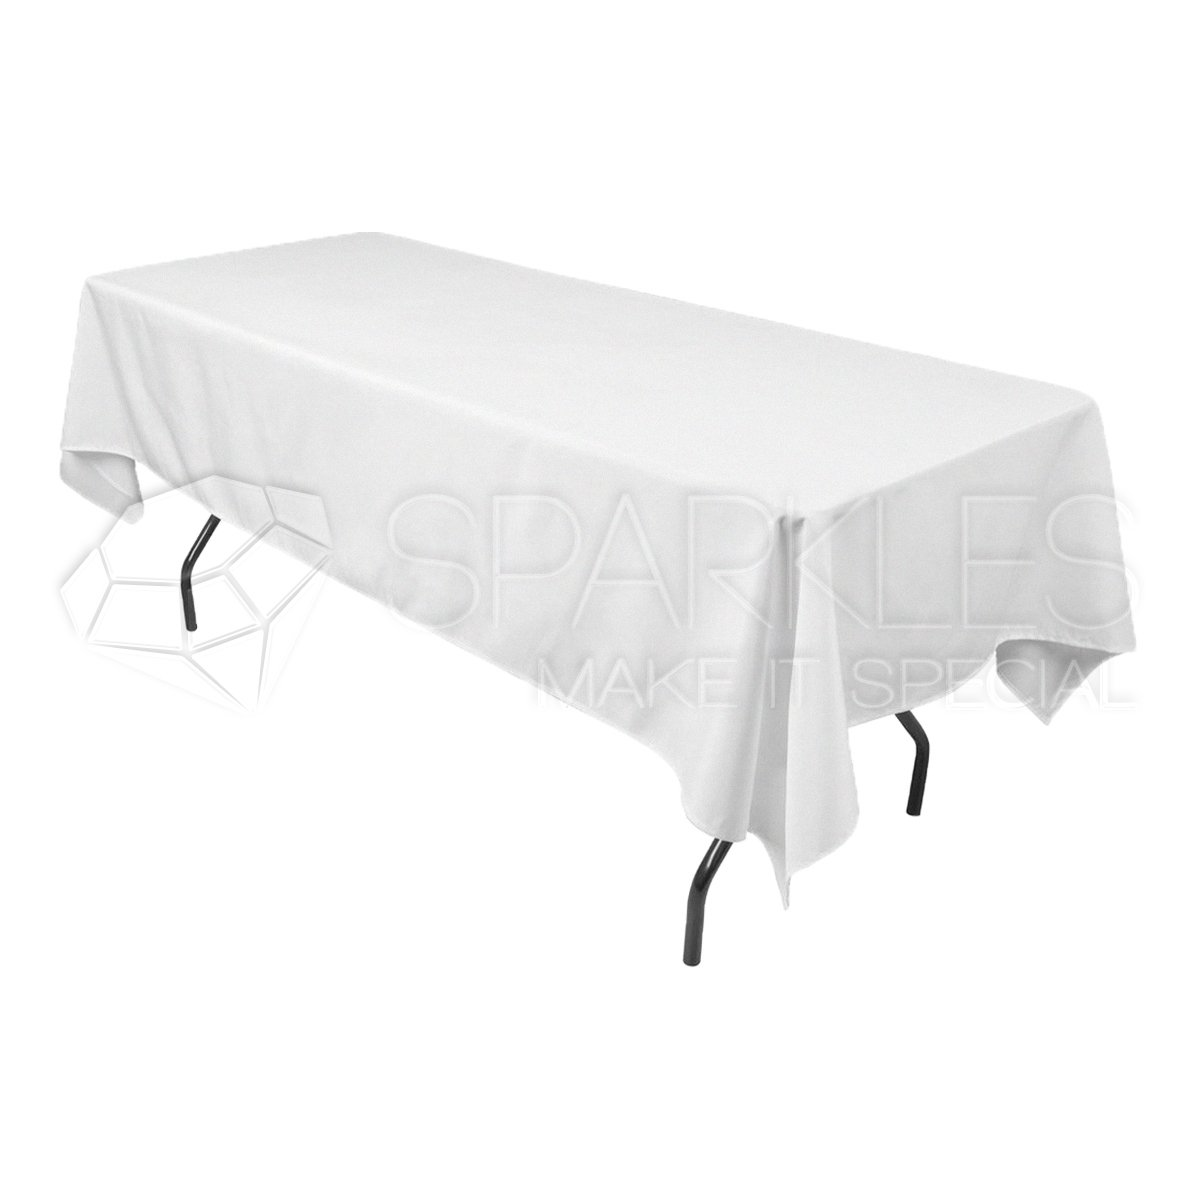 Sparkles Make It Special 10-pcs 60'' x 102'' Inch Rectangular Polyester Cloth Fabric Linen Tablecloth - Wedding Reception Restaurant Banquet Party - Machine Washable - Choice of Color - White